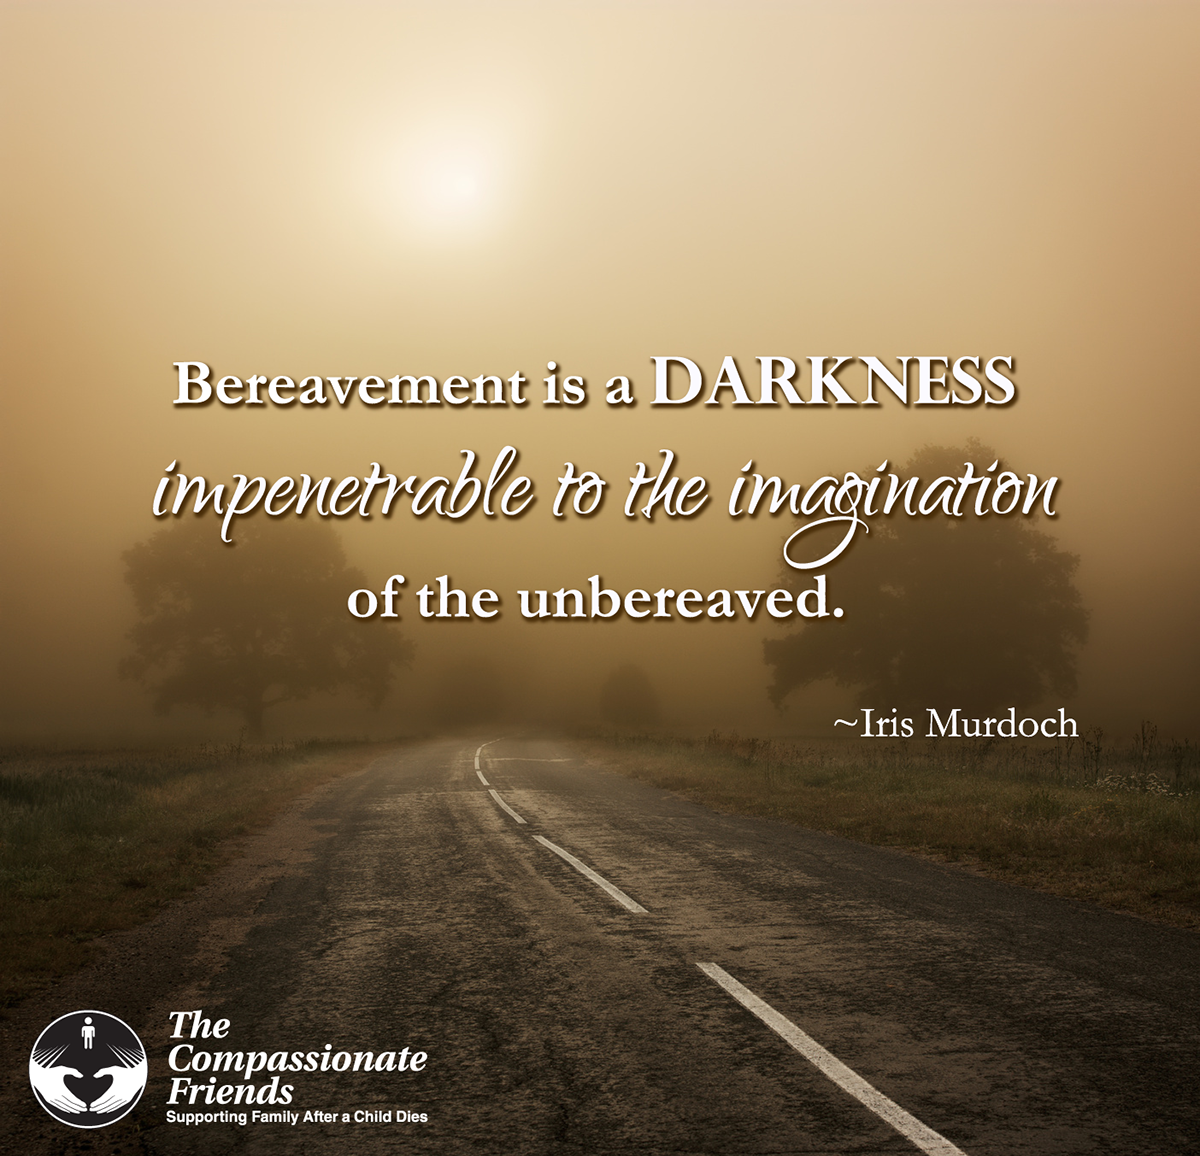 Bereavement Quotes For Friends: Grief Quotes, Bereavement Is A Darkness ... The